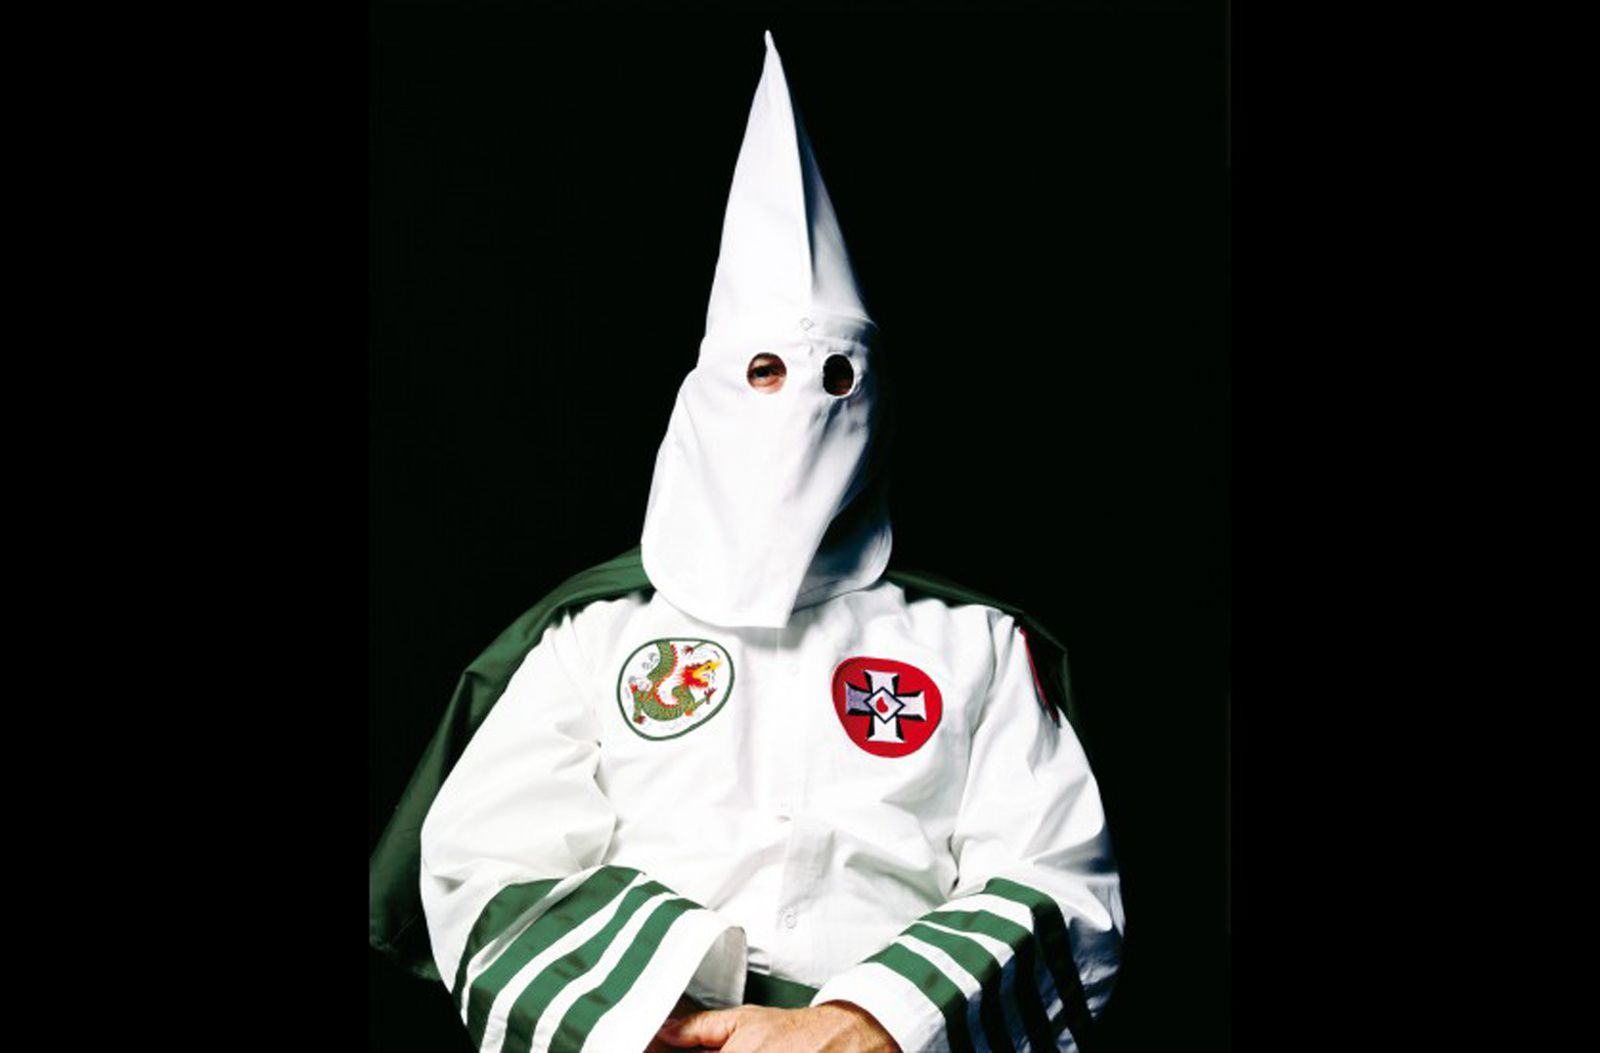 """Klansman, (Grand Dragon of Invisible Empire)"", 1999 de Andres SERRANO - Courtesy MEP"